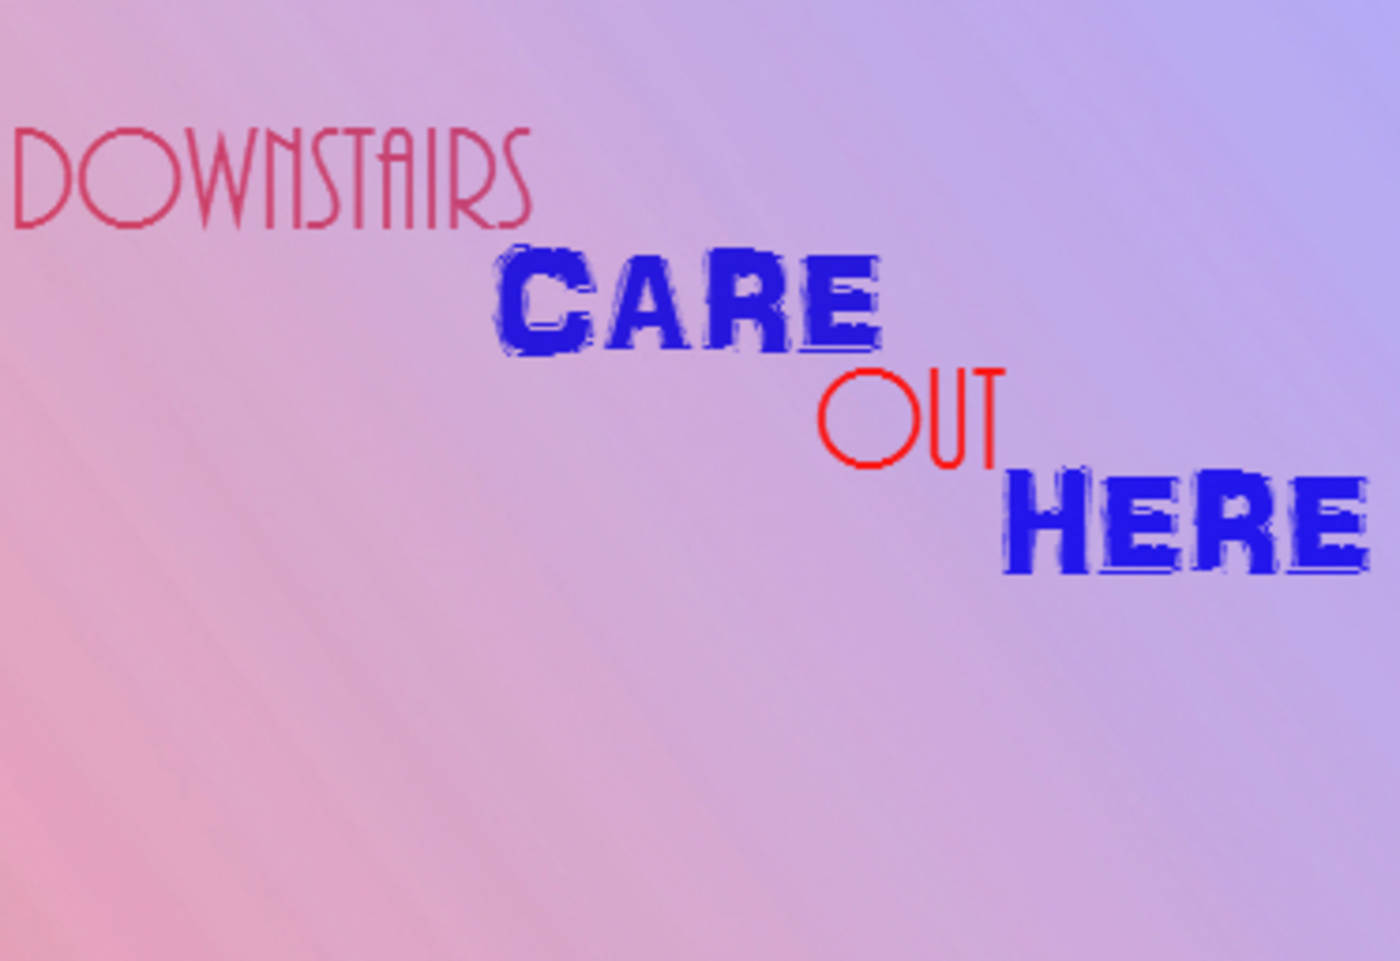 Downstairs Care Outthere podcast